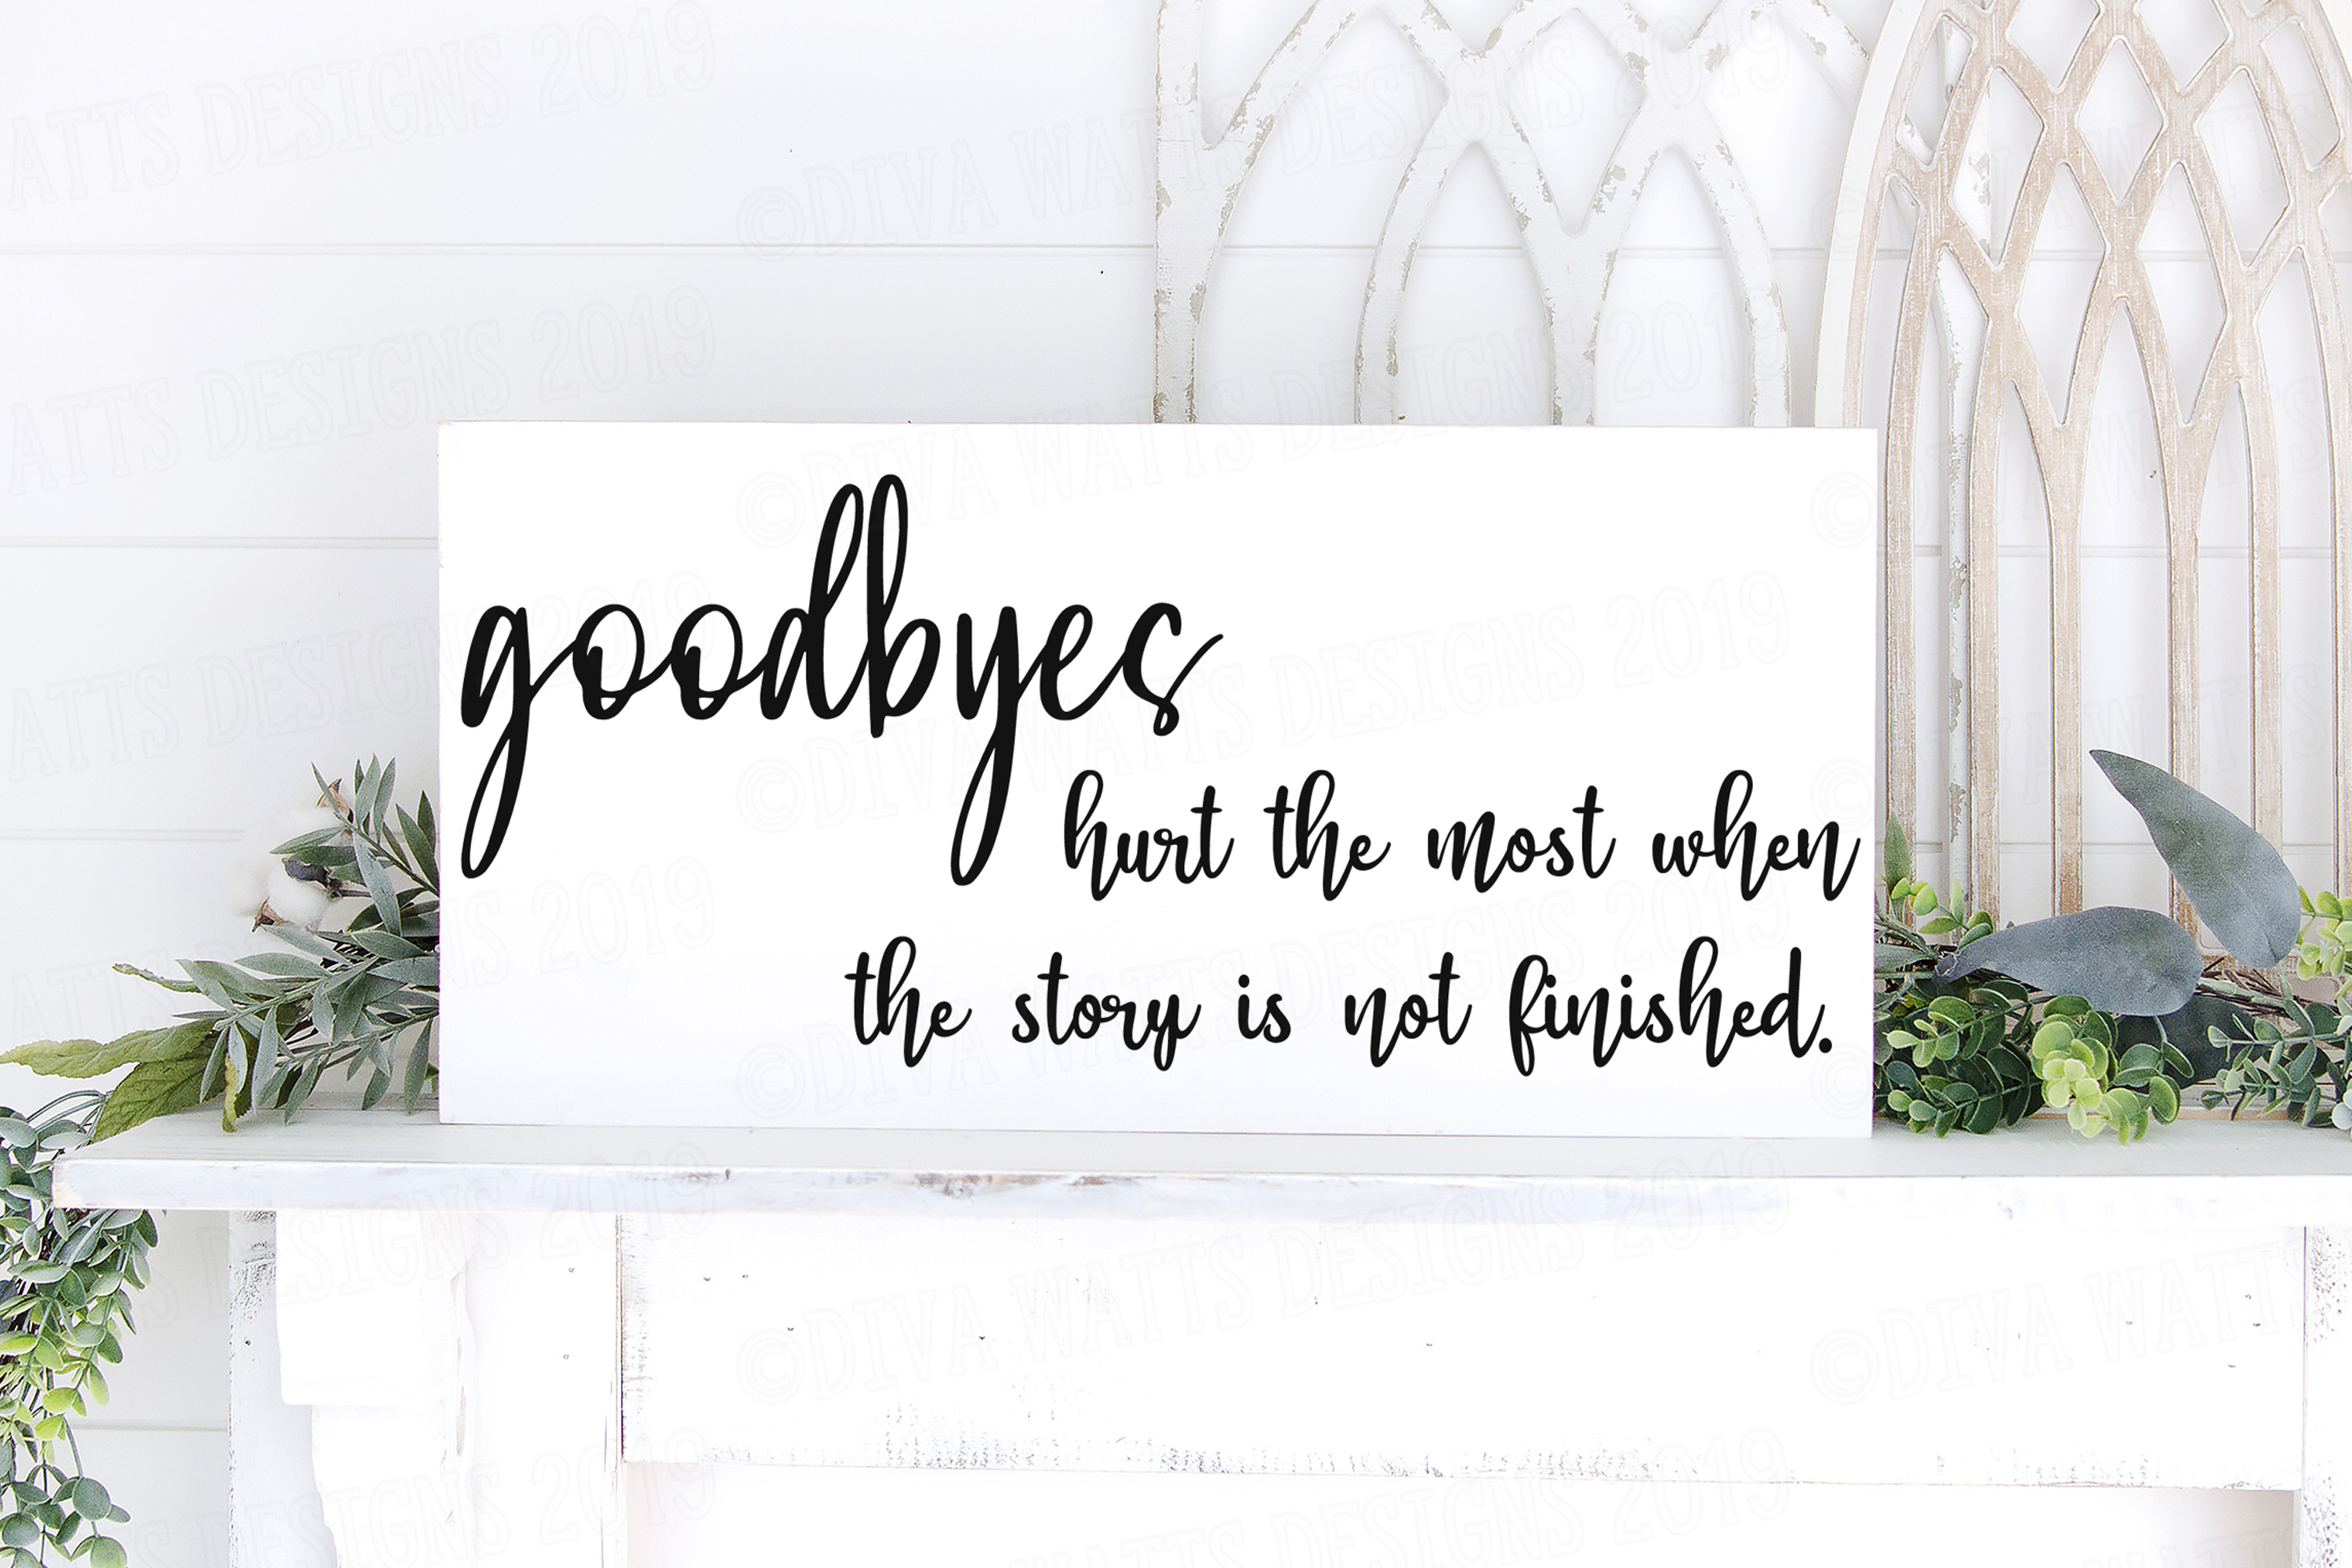 Goodbyes Hurt The Most When The Story Is Not Finished SVG example image 1